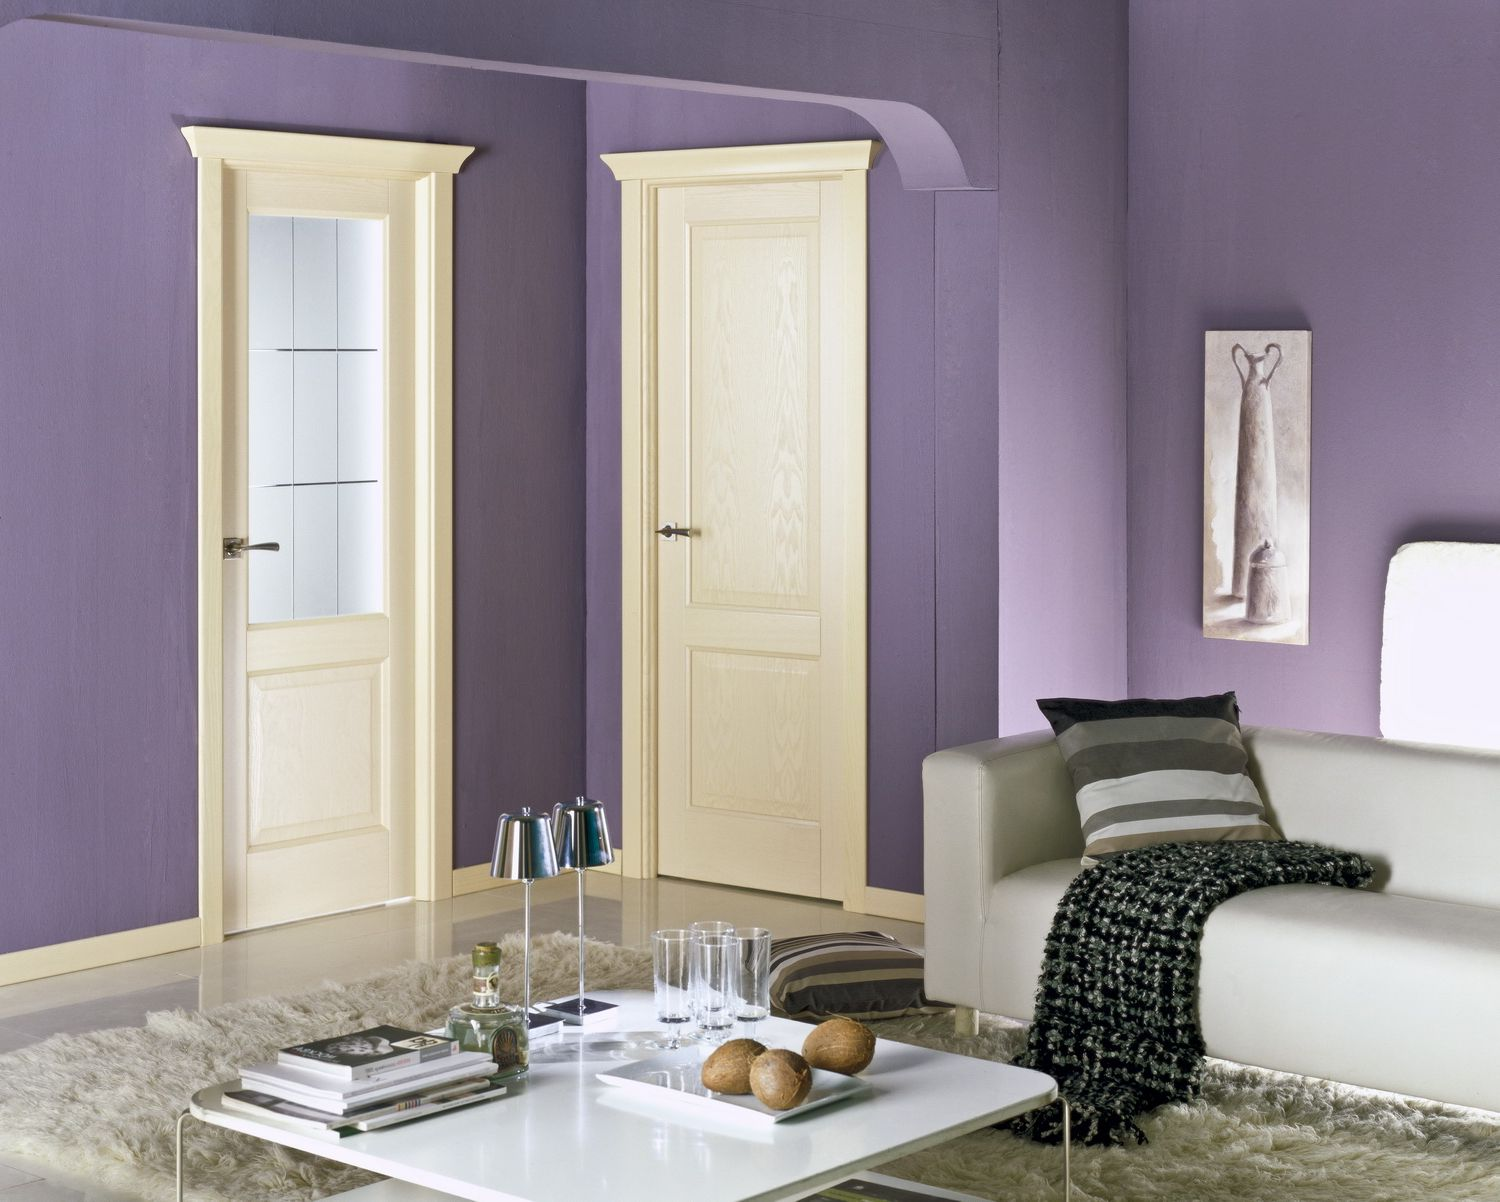 Masonite doors in interior design